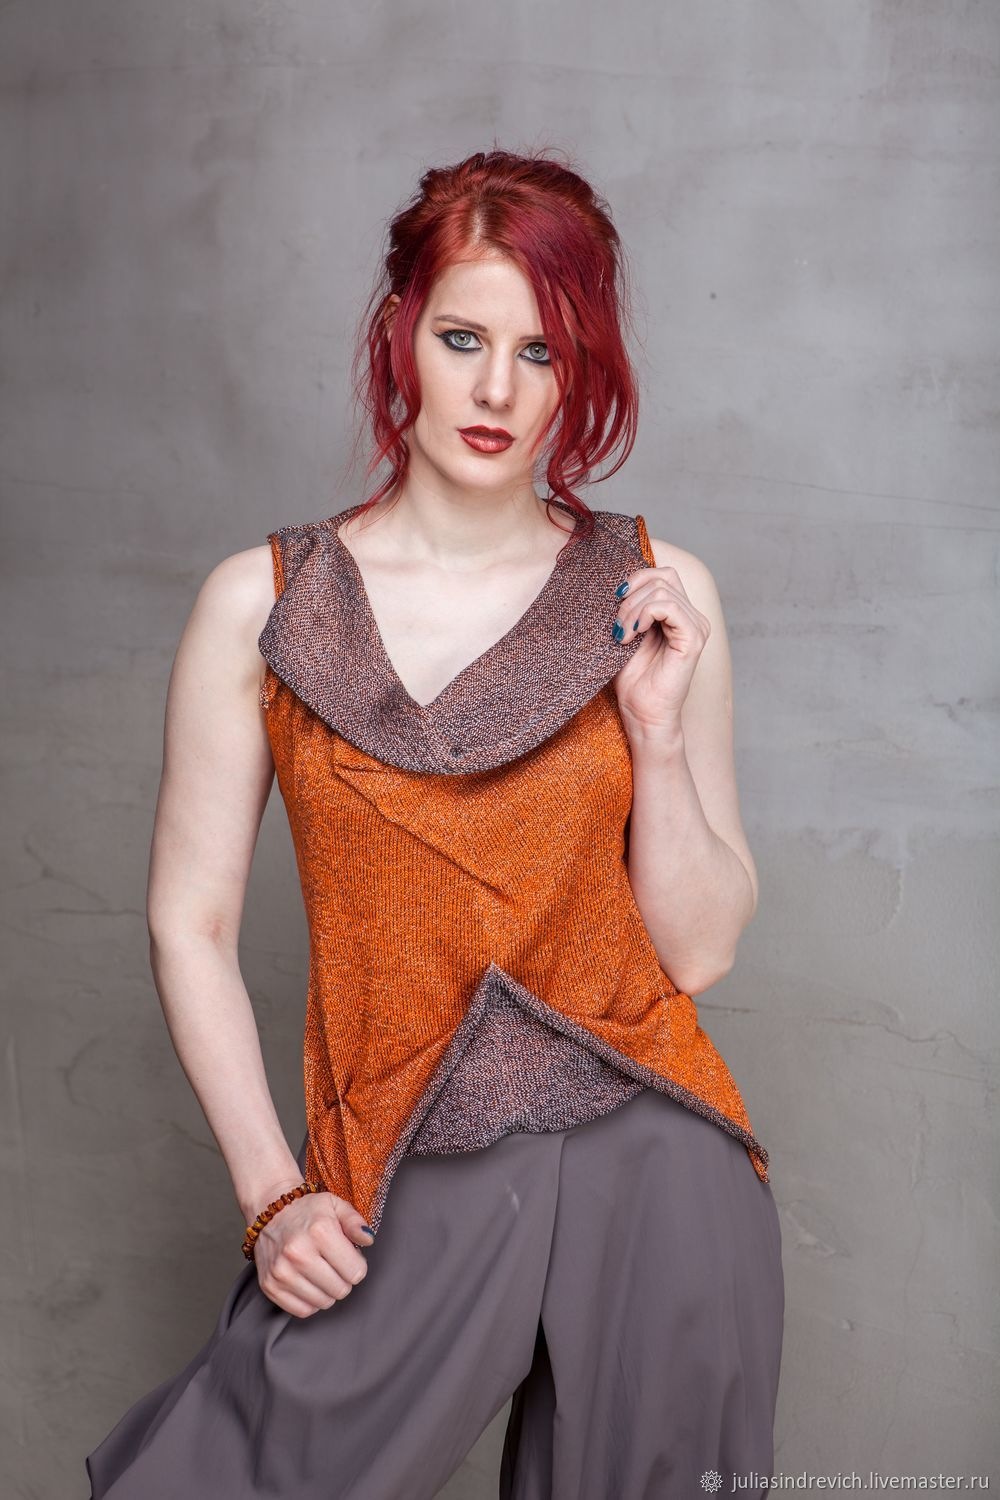 S_012 Knit top with kangaroo pocket and fold-over collar front with a flared back lace up, pleats on the chest, color orange/silver. S_043 Sewn pants Crazy Legs, gray color.